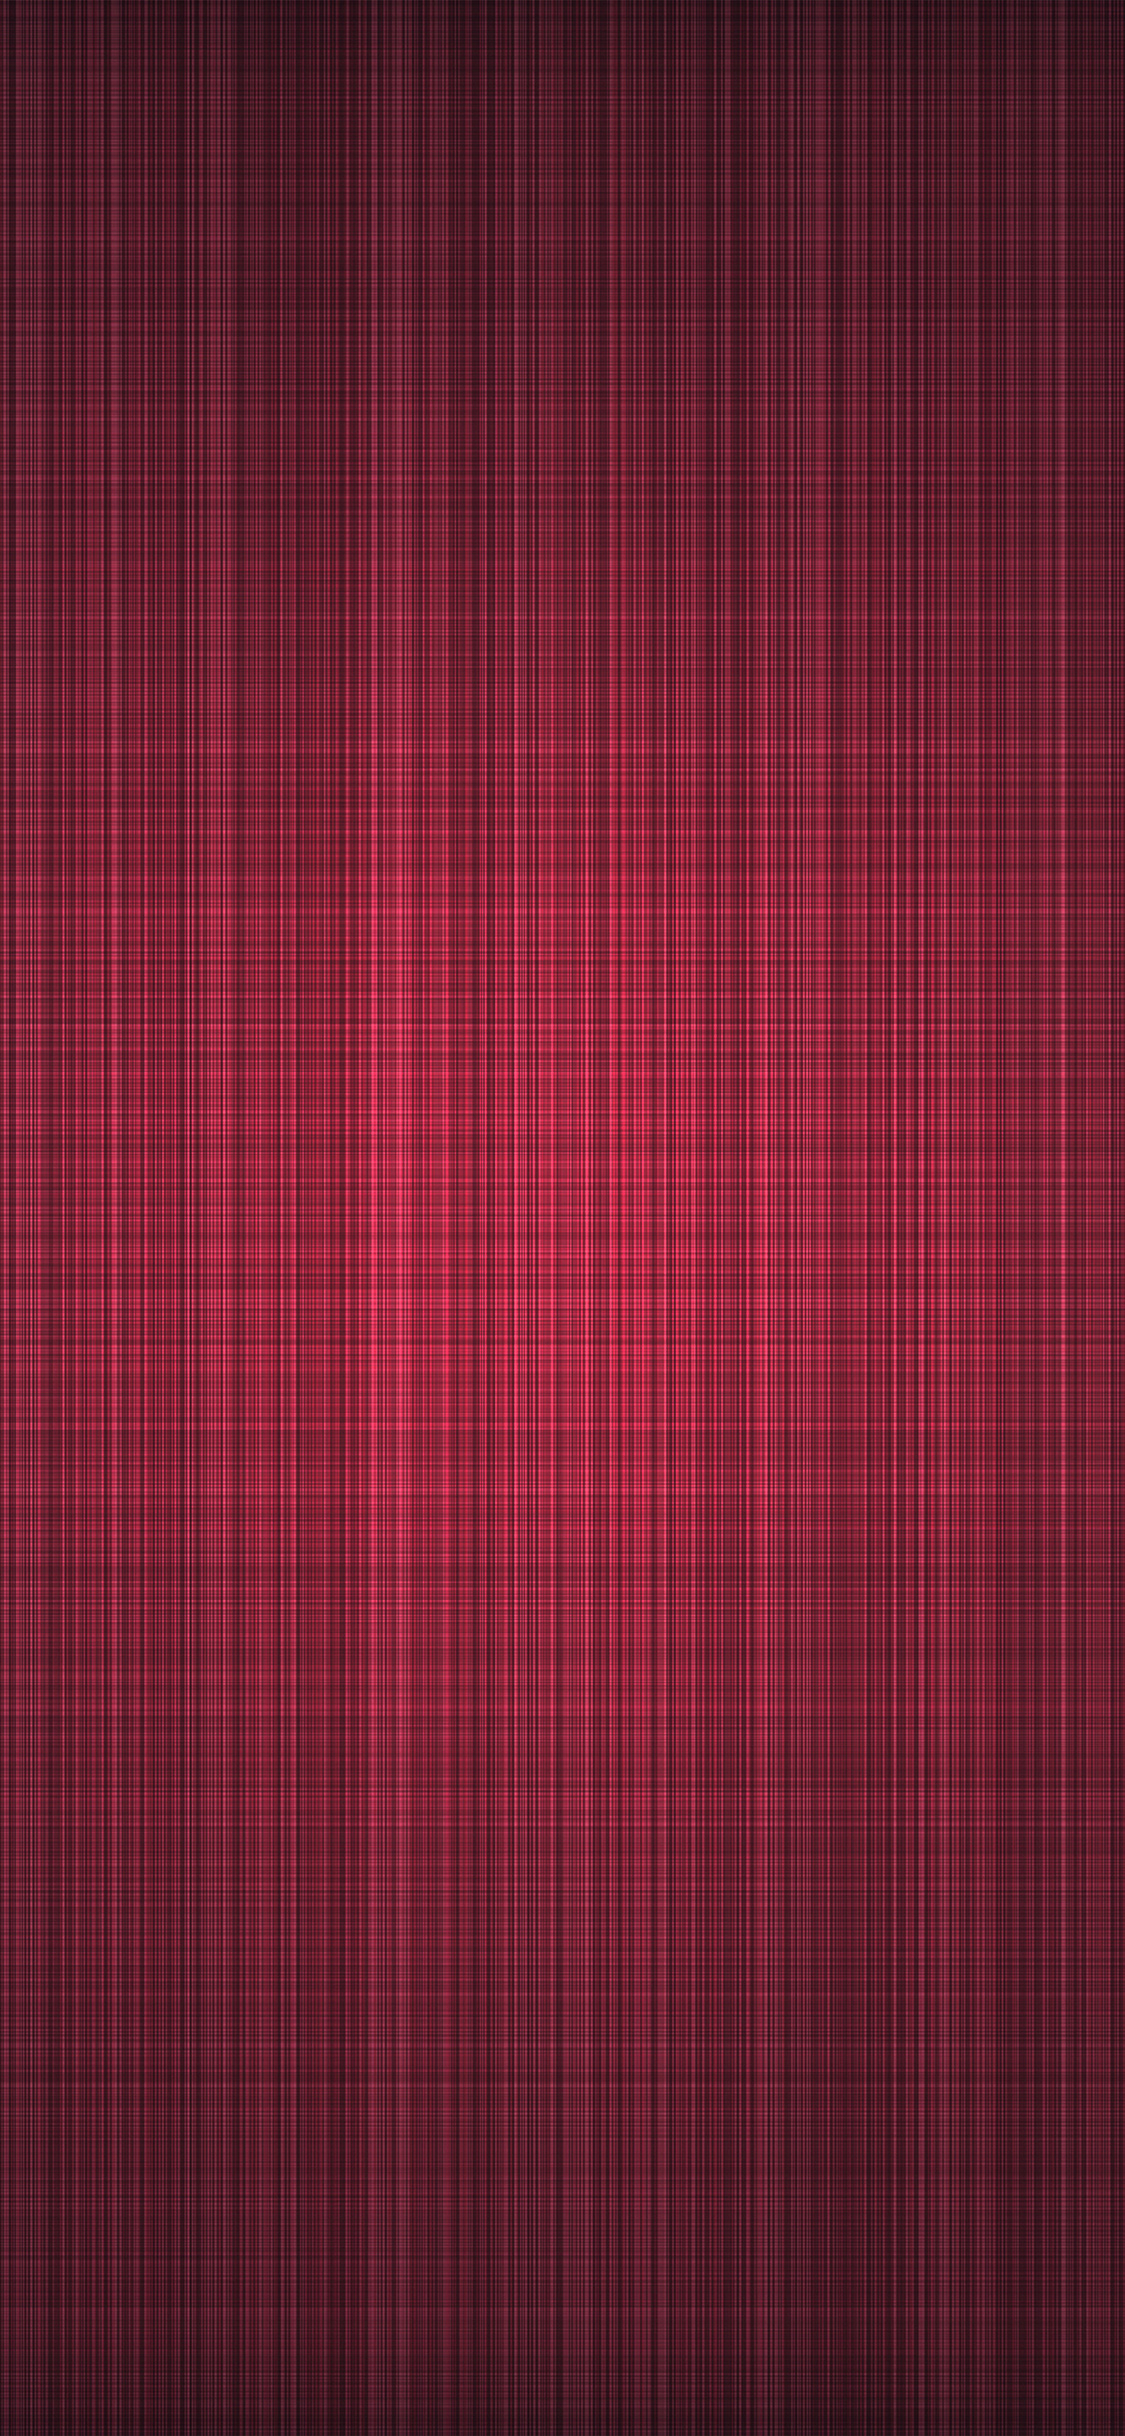 iPhonexpapers.com-Apple-iPhone-wallpaper-vr81-linen-red-dark-abstract-pattern